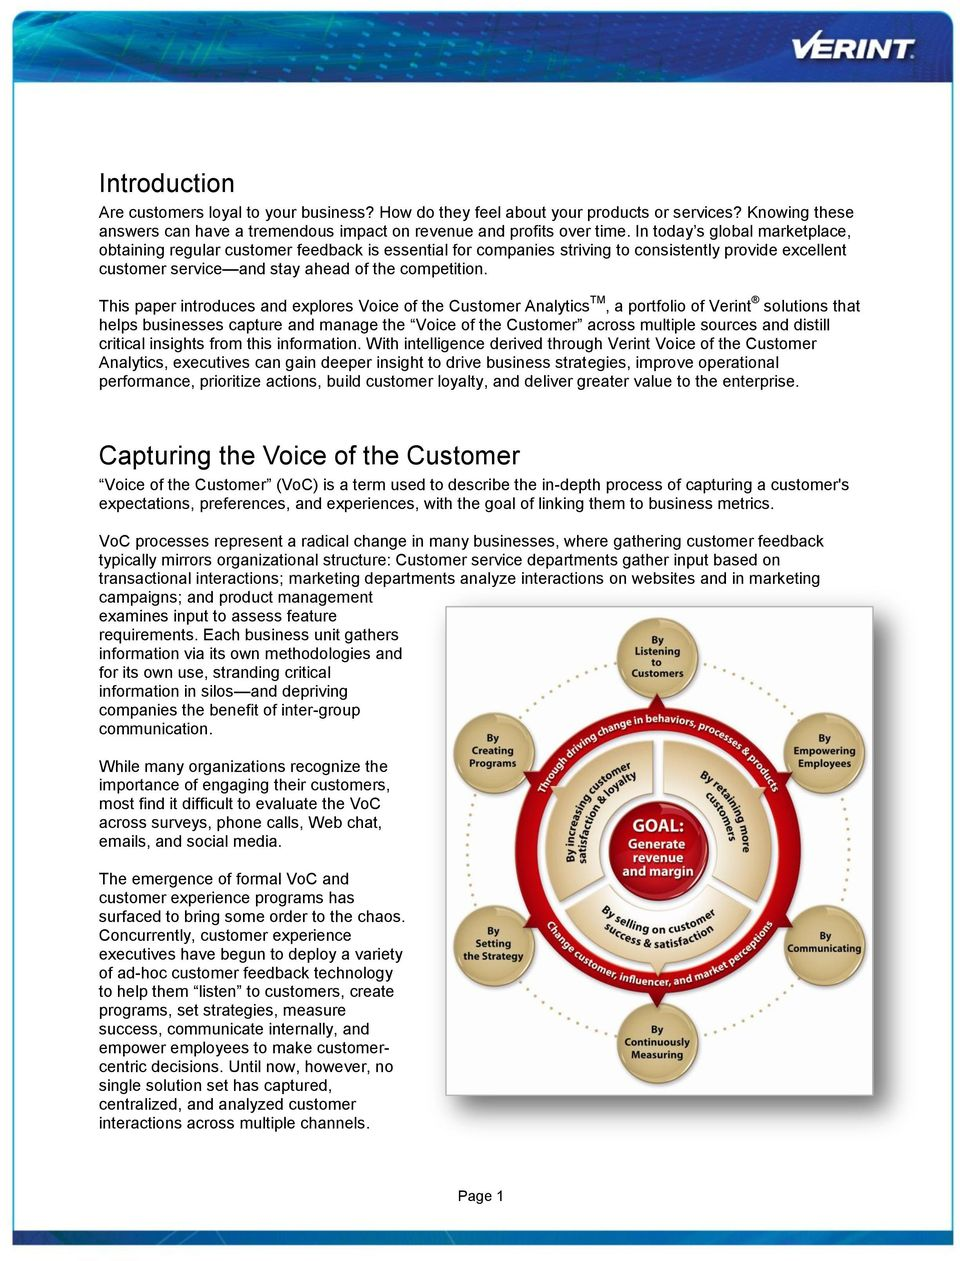 This paper introduces and explores Voice of the Customer Analytics TM, a portfolio of Verint solutions that helps businesses capture and manage the Voice of the Customer across multiple sources and